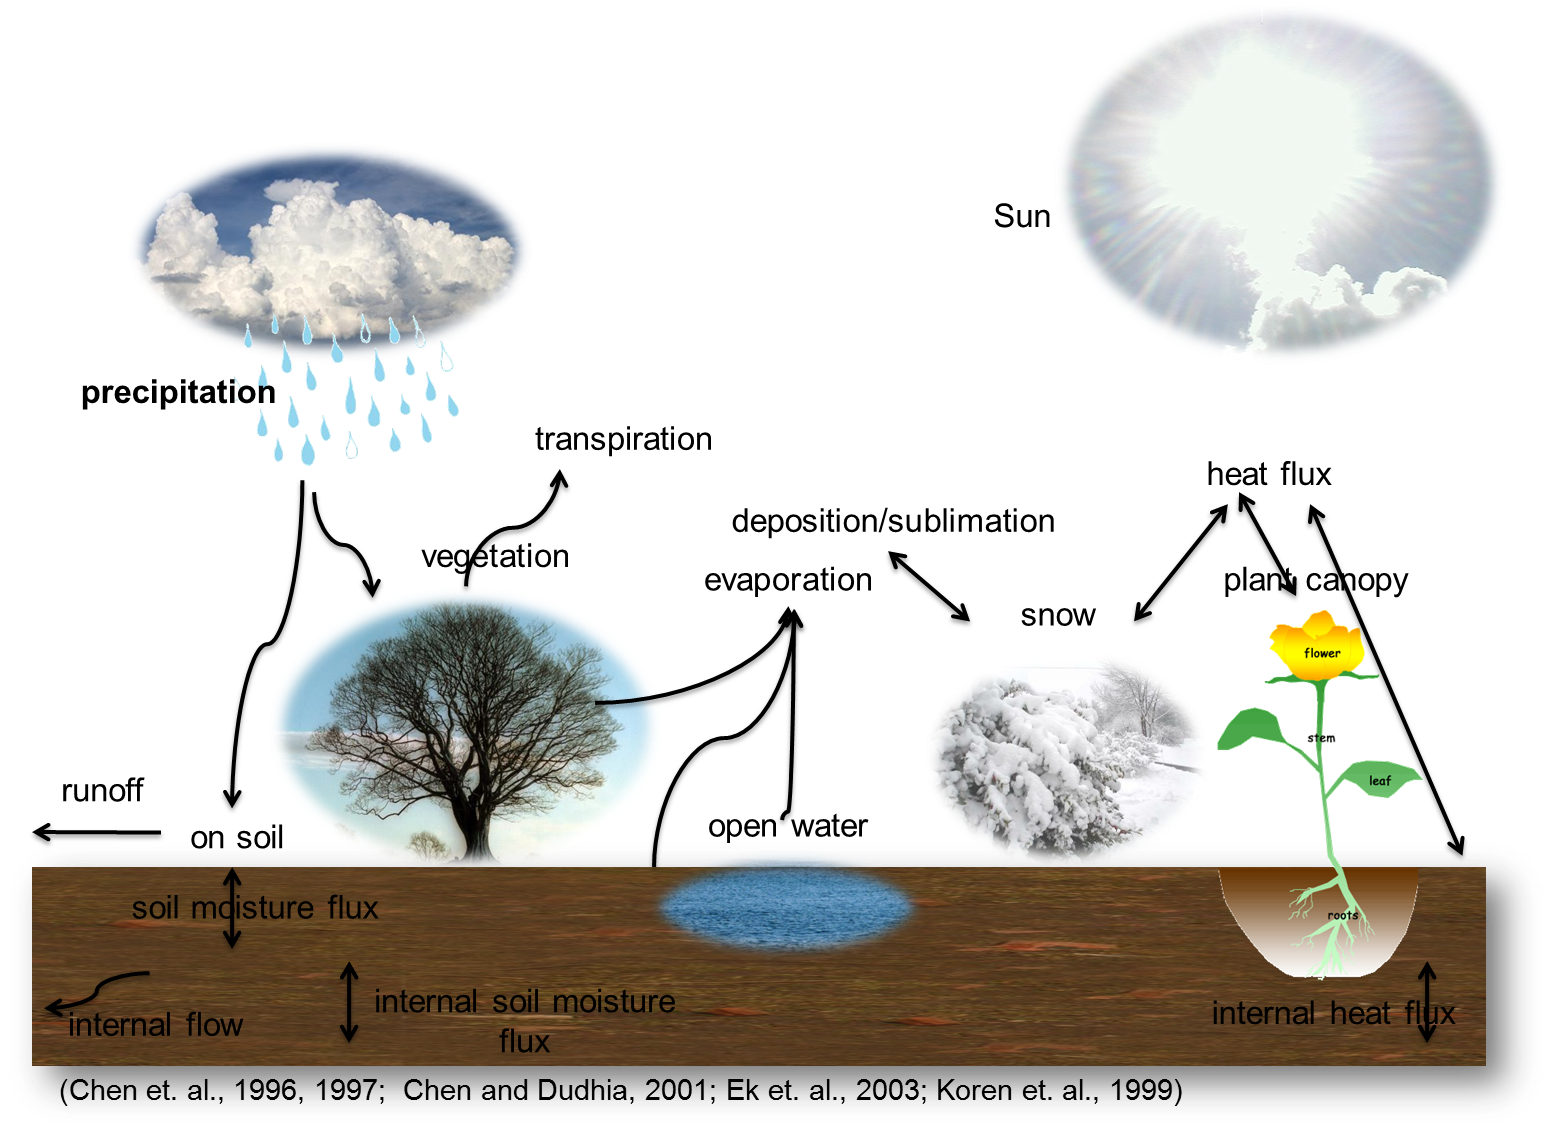 hydrological cycle Many processes work together to keep earth's water moving in a cycle there are five processes at work in the hydrologic cycle: condensation, precipitation, infiltration, runoff, and evapotranspiration.